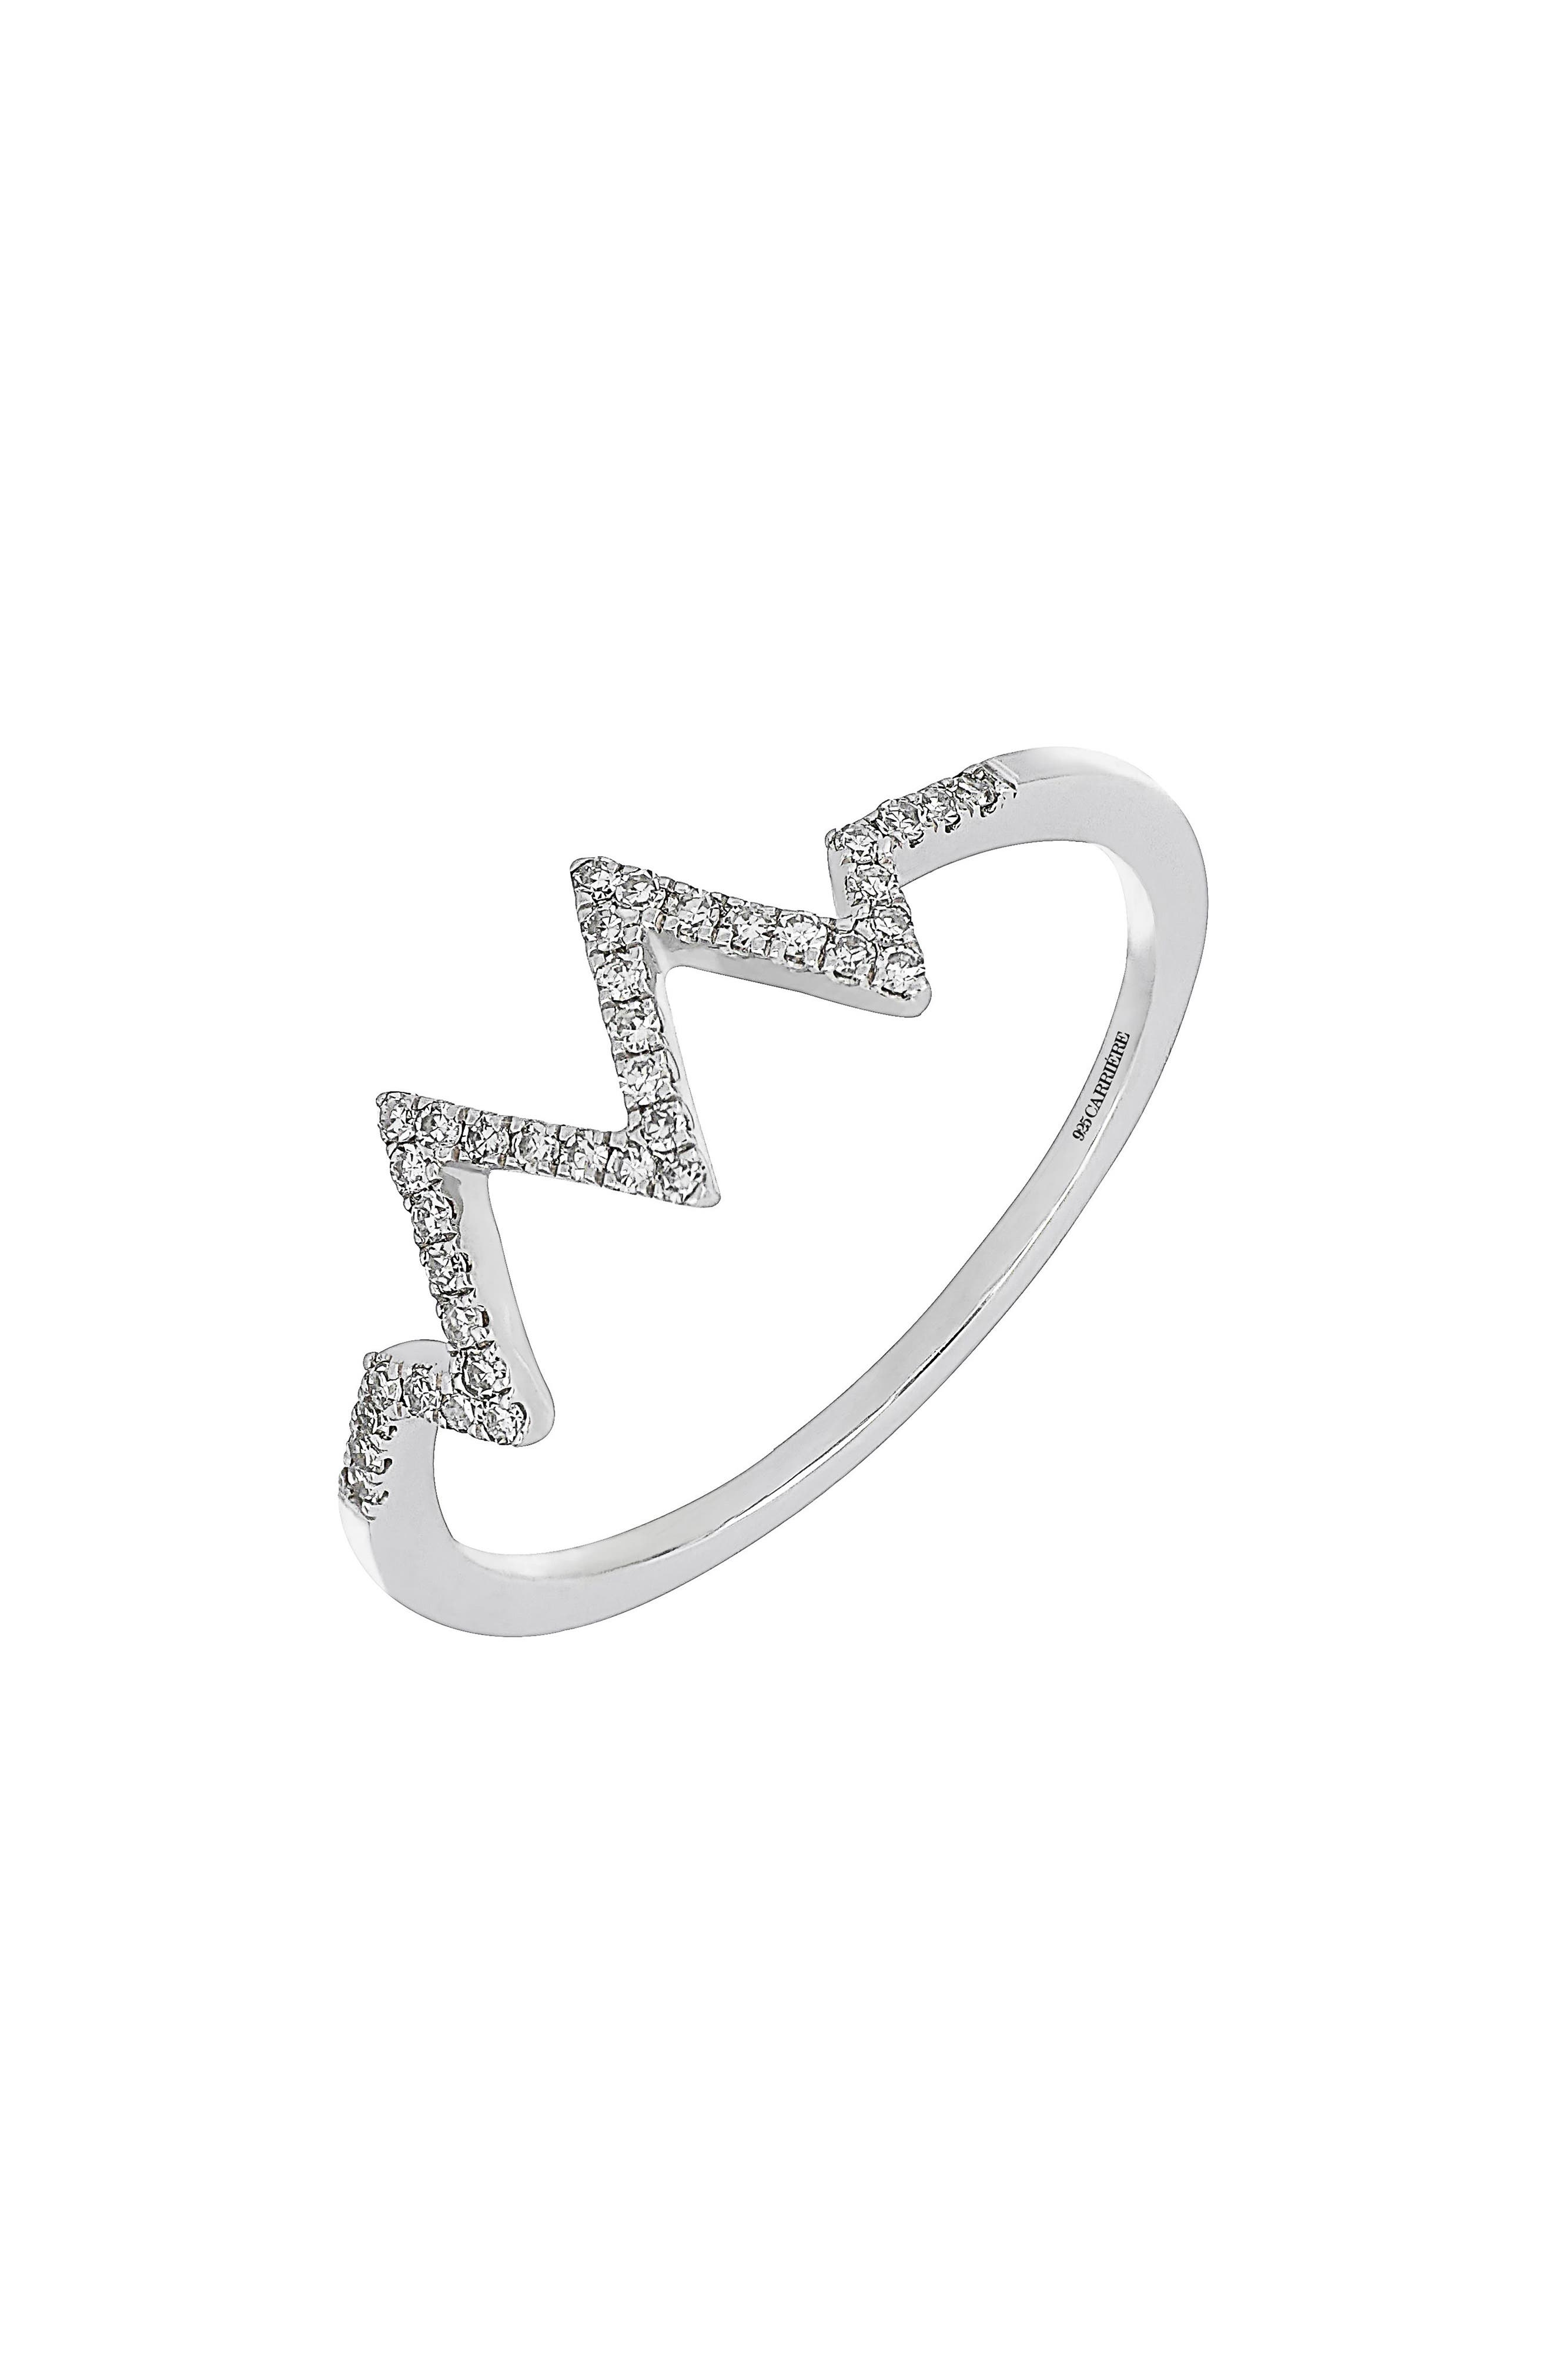 Main Image - Carrière Zigzag Diamond Ring (Nordstrom Exclusive)